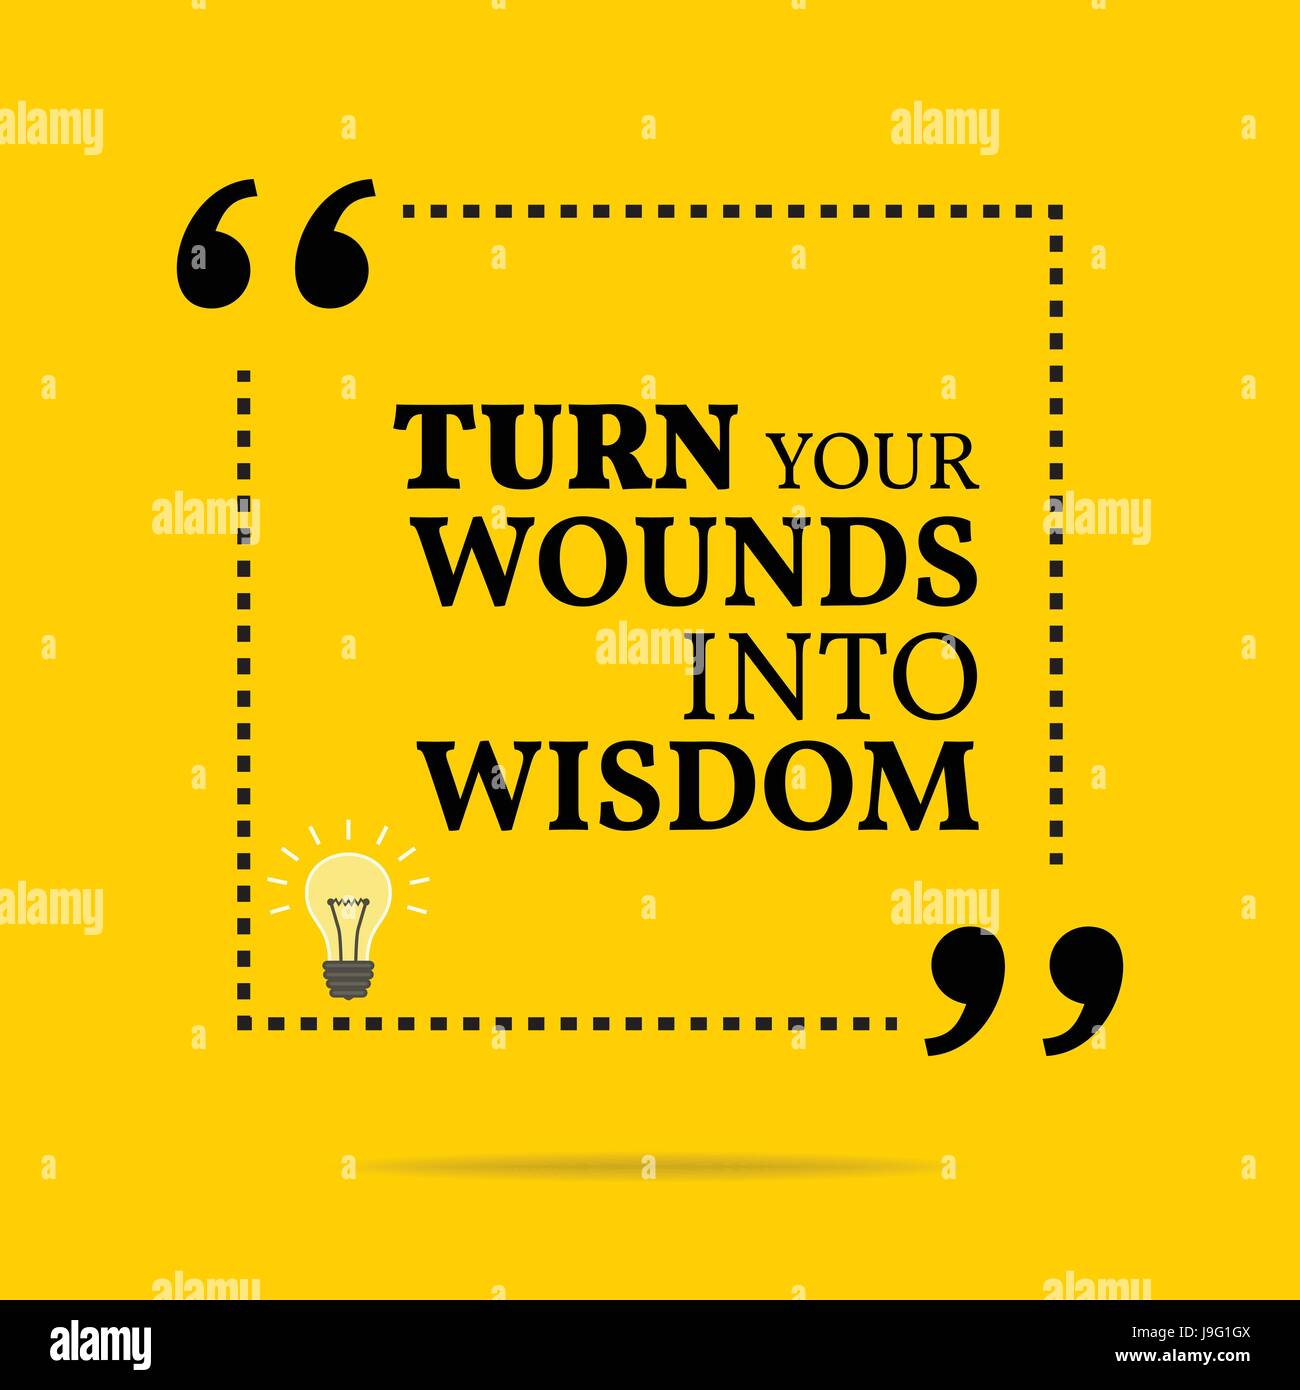 Inspirational motivational quote. Turn your wounds into wisdom. Simple trendy design. - Stock Vector